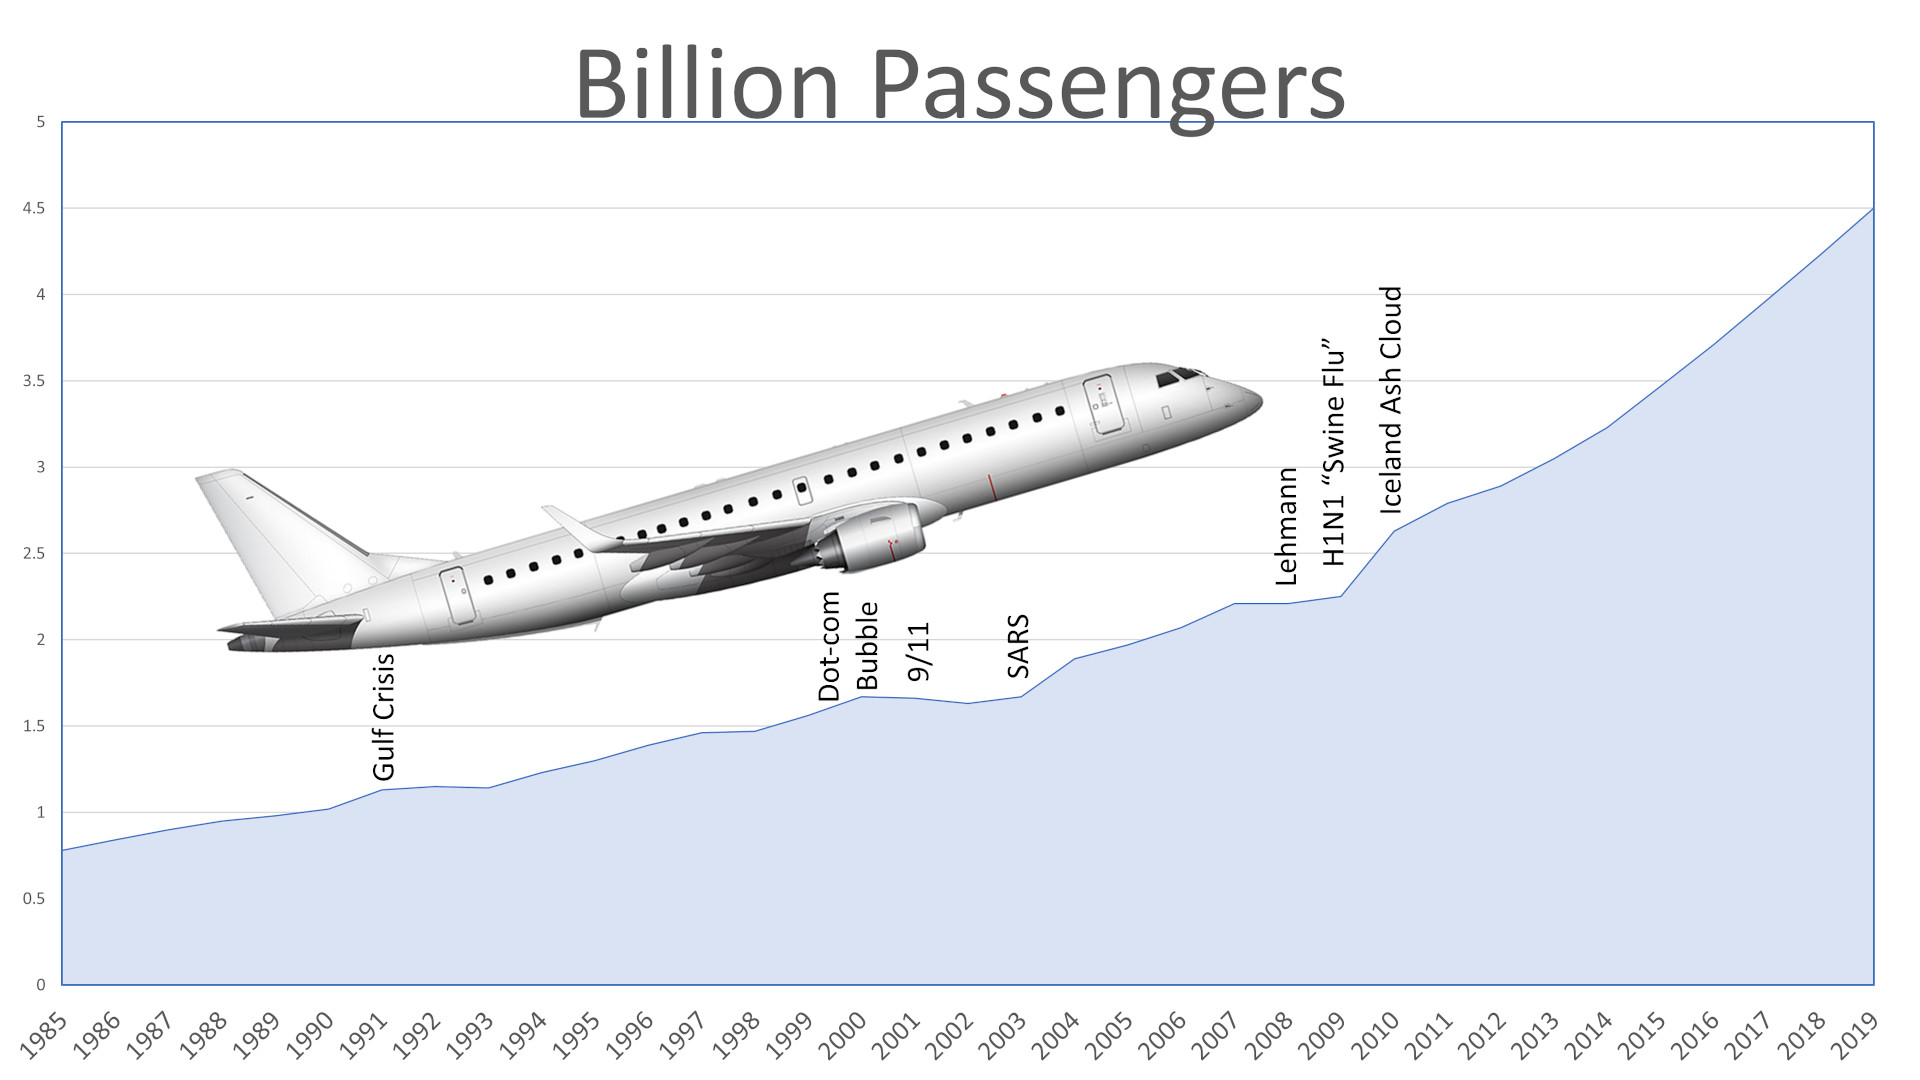 Passenger Development + Setbacks 1985-2019